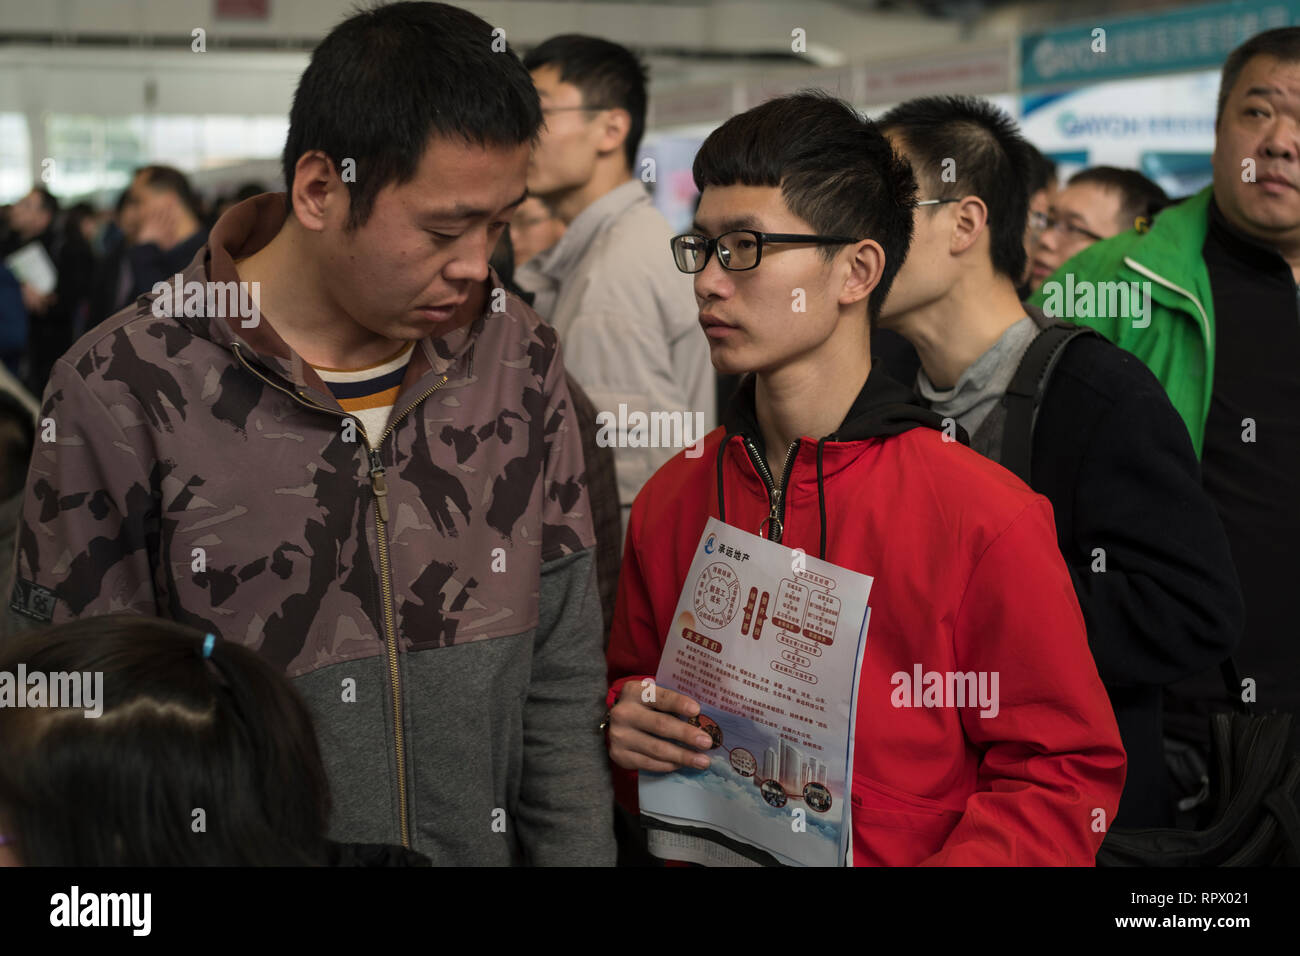 Xu Yue, a fresh graduate of electrical engineering, attends a job fair in Beijing, China. 23-Feb-2019 - Stock Image